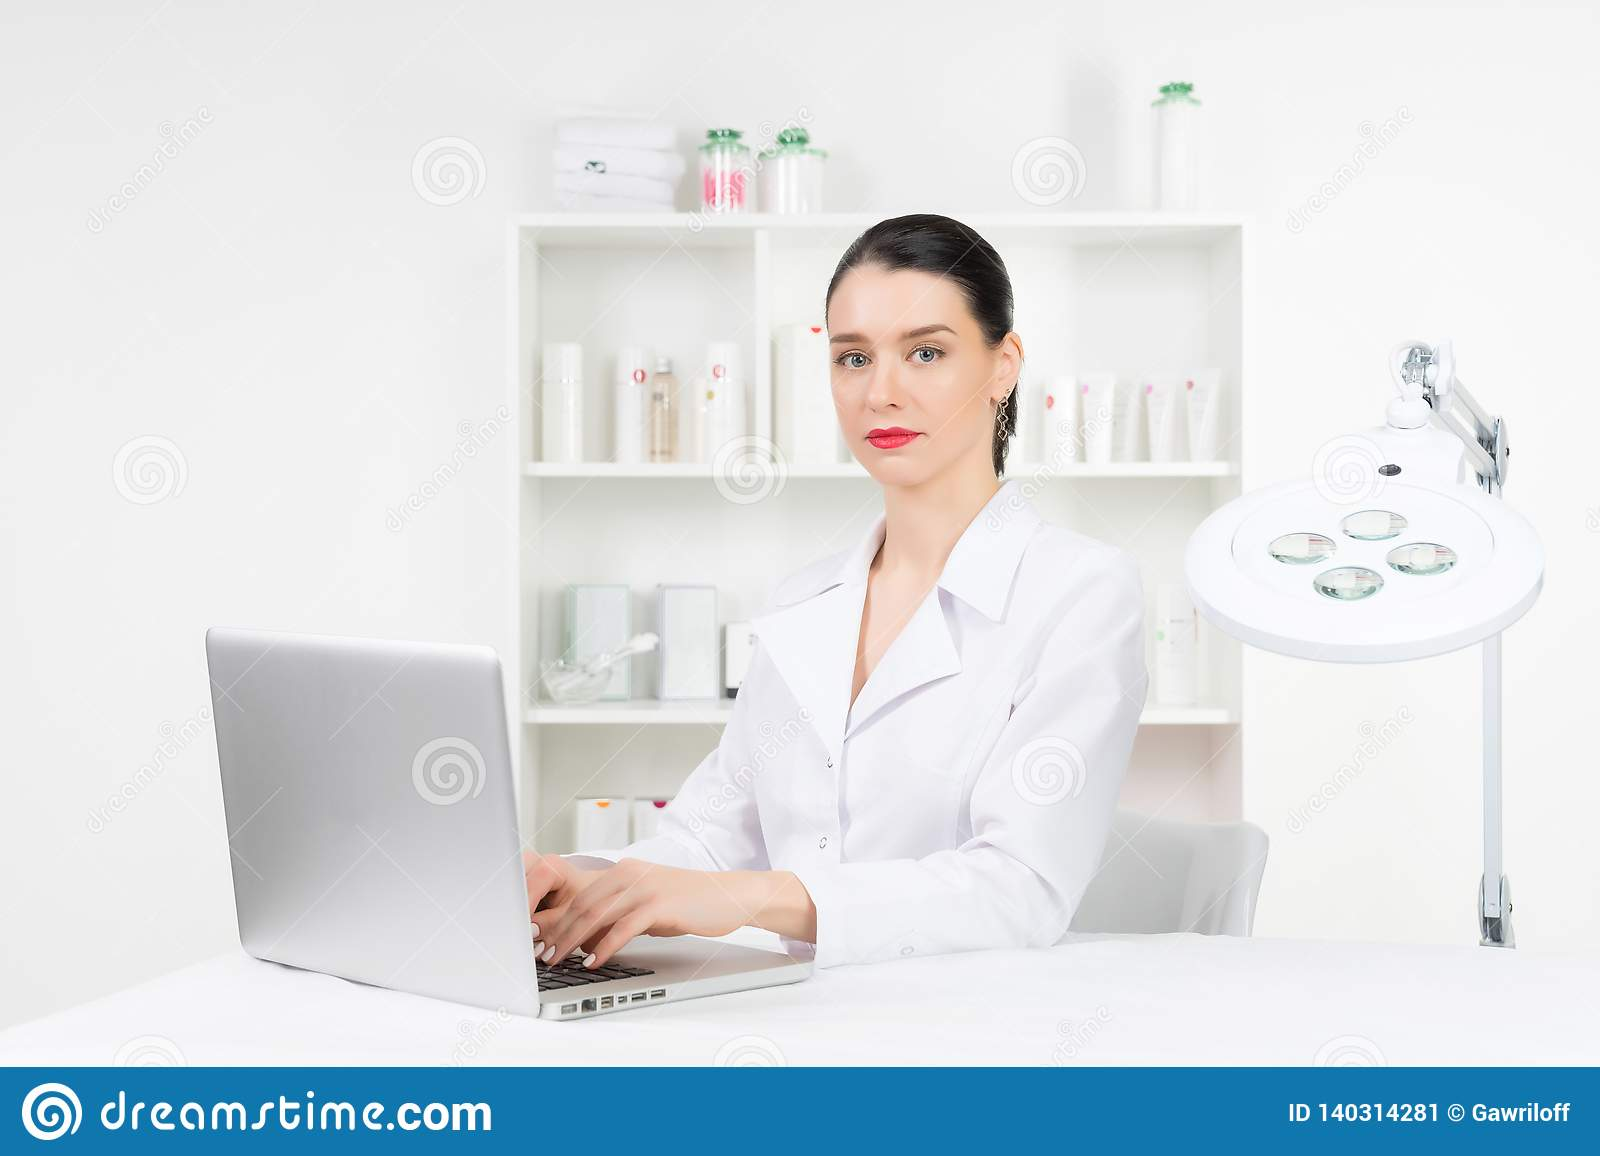 Woman beautician doctor at work in spa center. Portrait of a young female professional cosmetologist. Female employee in